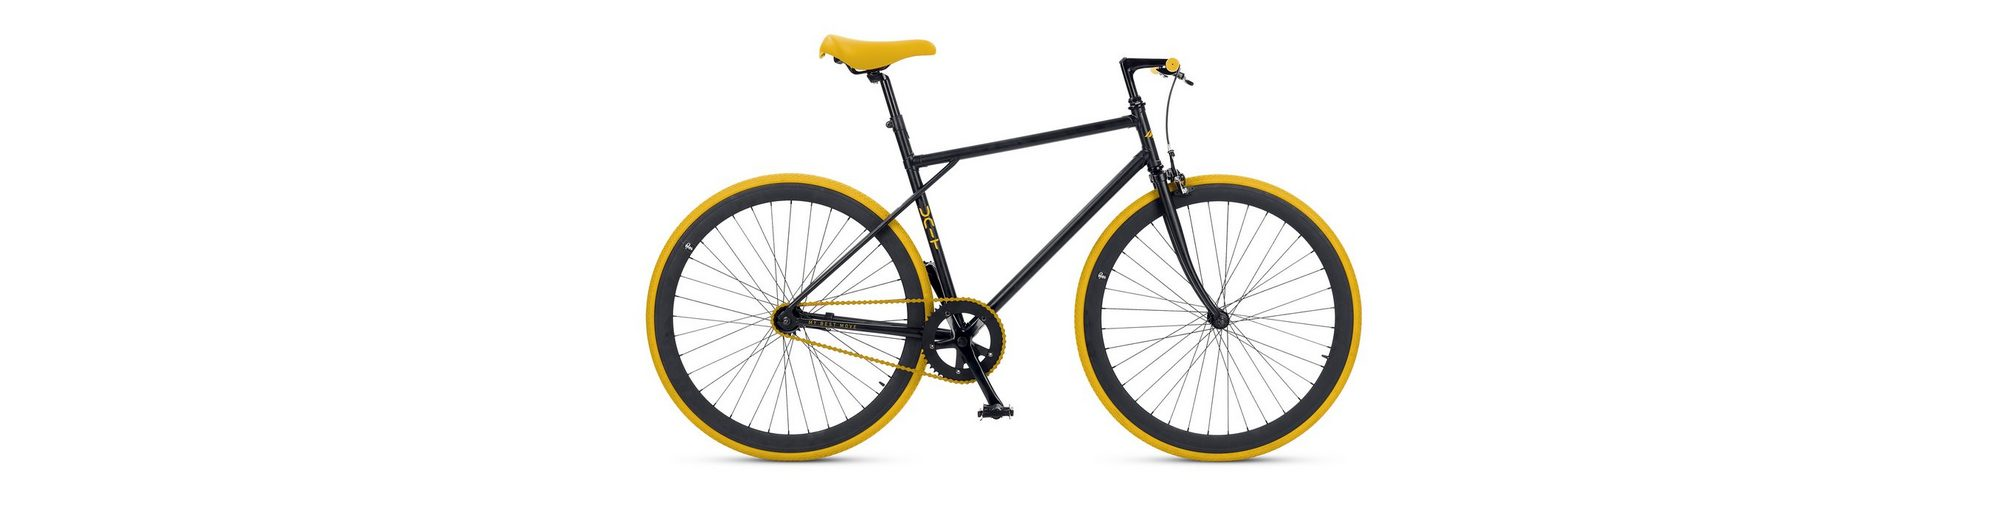 Fitnessbike, 28 Zoll, 1 Gang, Freilauf oder Fixed Gear, »Unit 581 Coaster Brake 1 S«, MBM